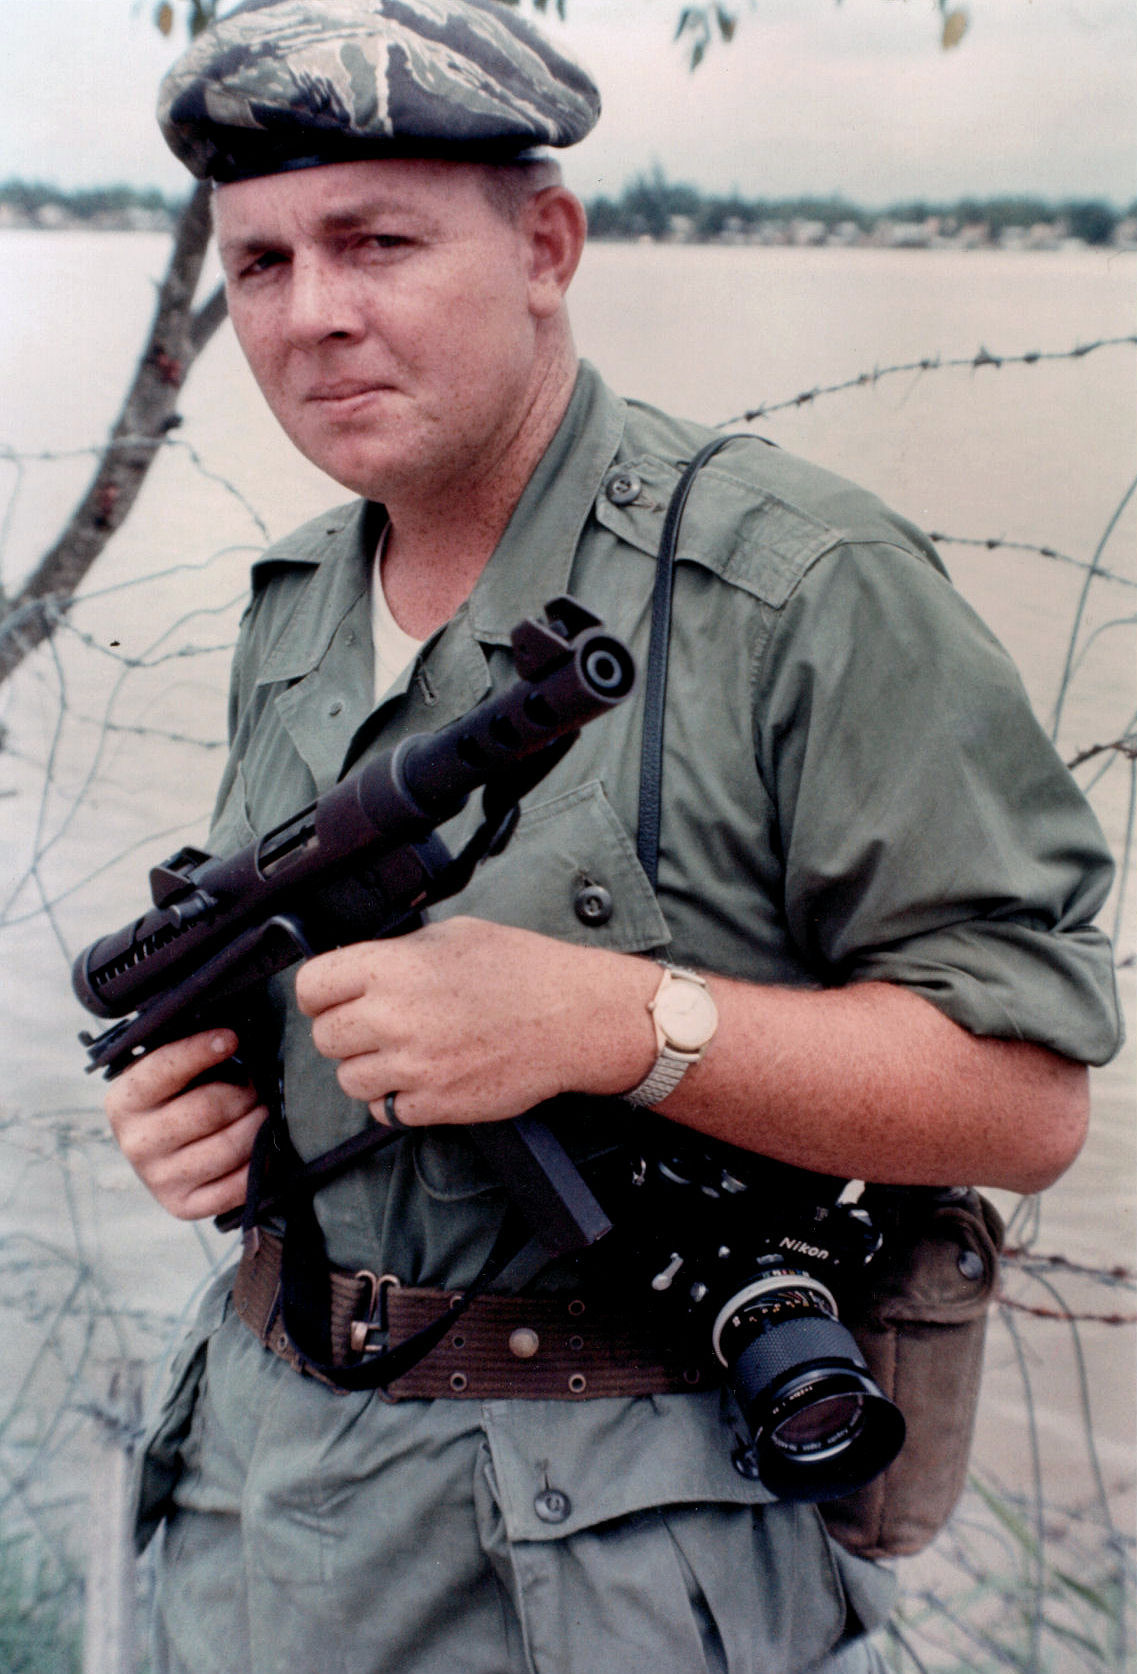 1 Storied War Reporter Joseph Galloway in Vietnam